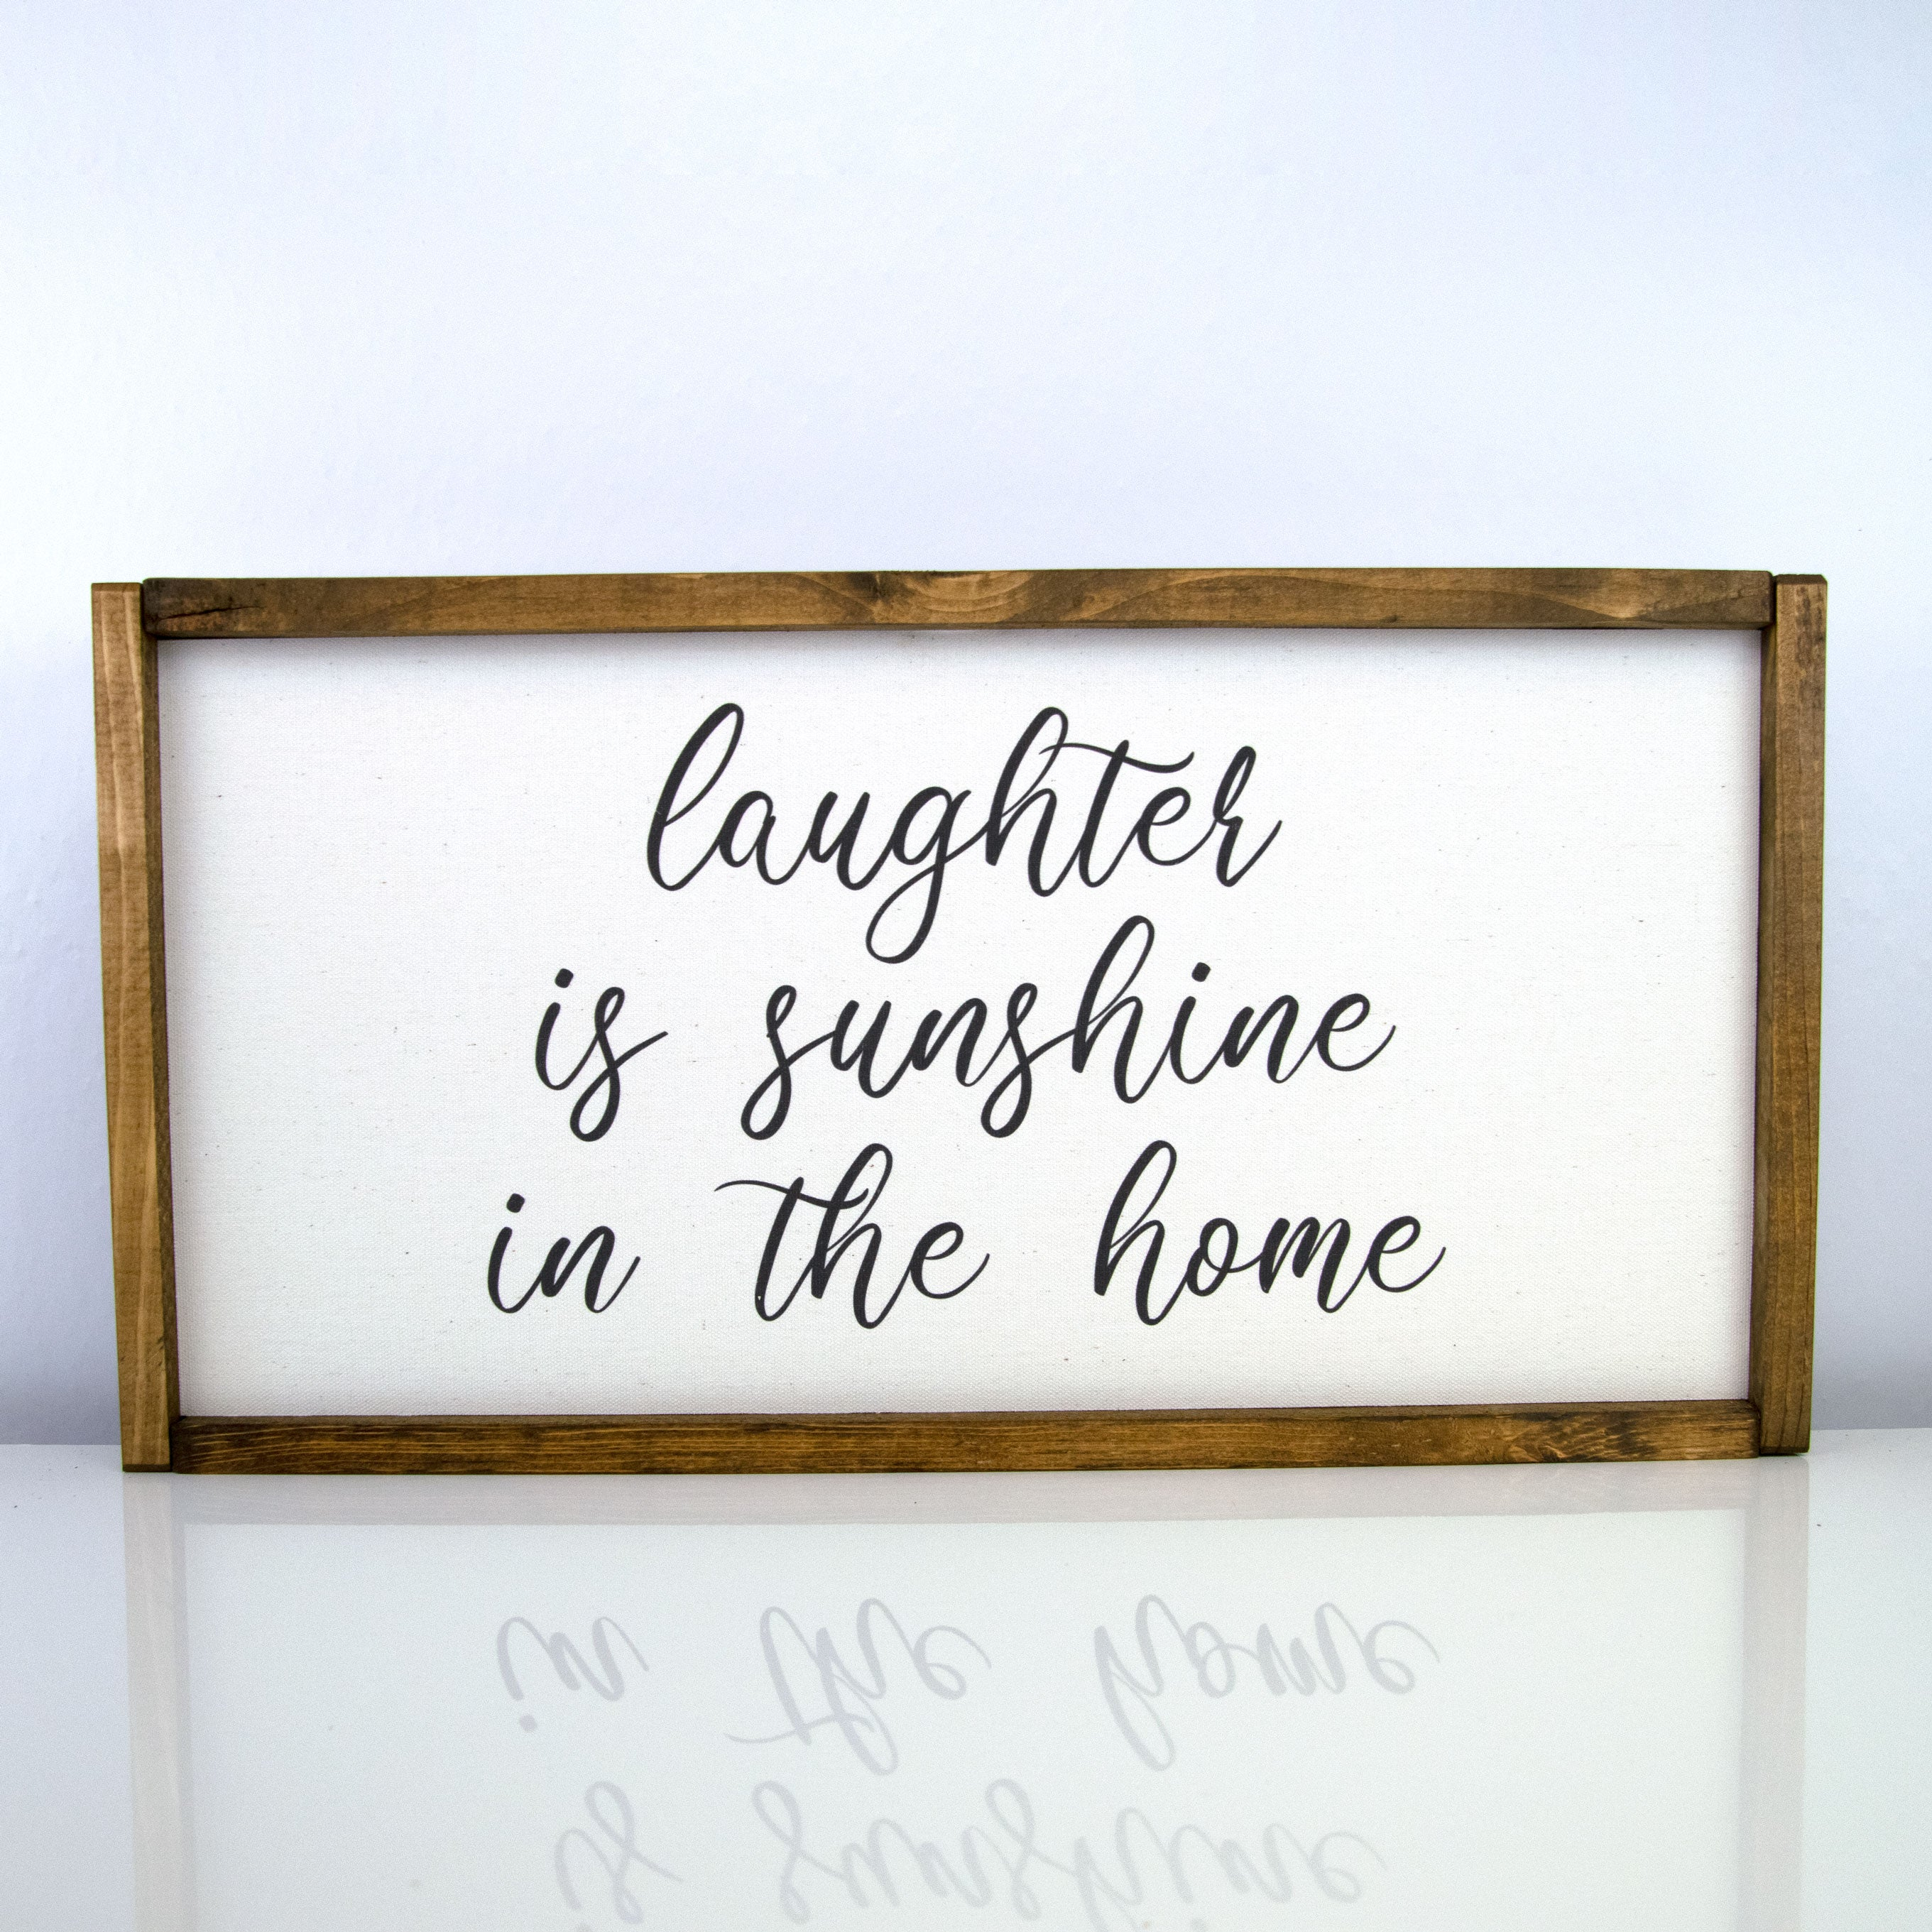 Laughter is Sunshine | 10 x 20 Classic